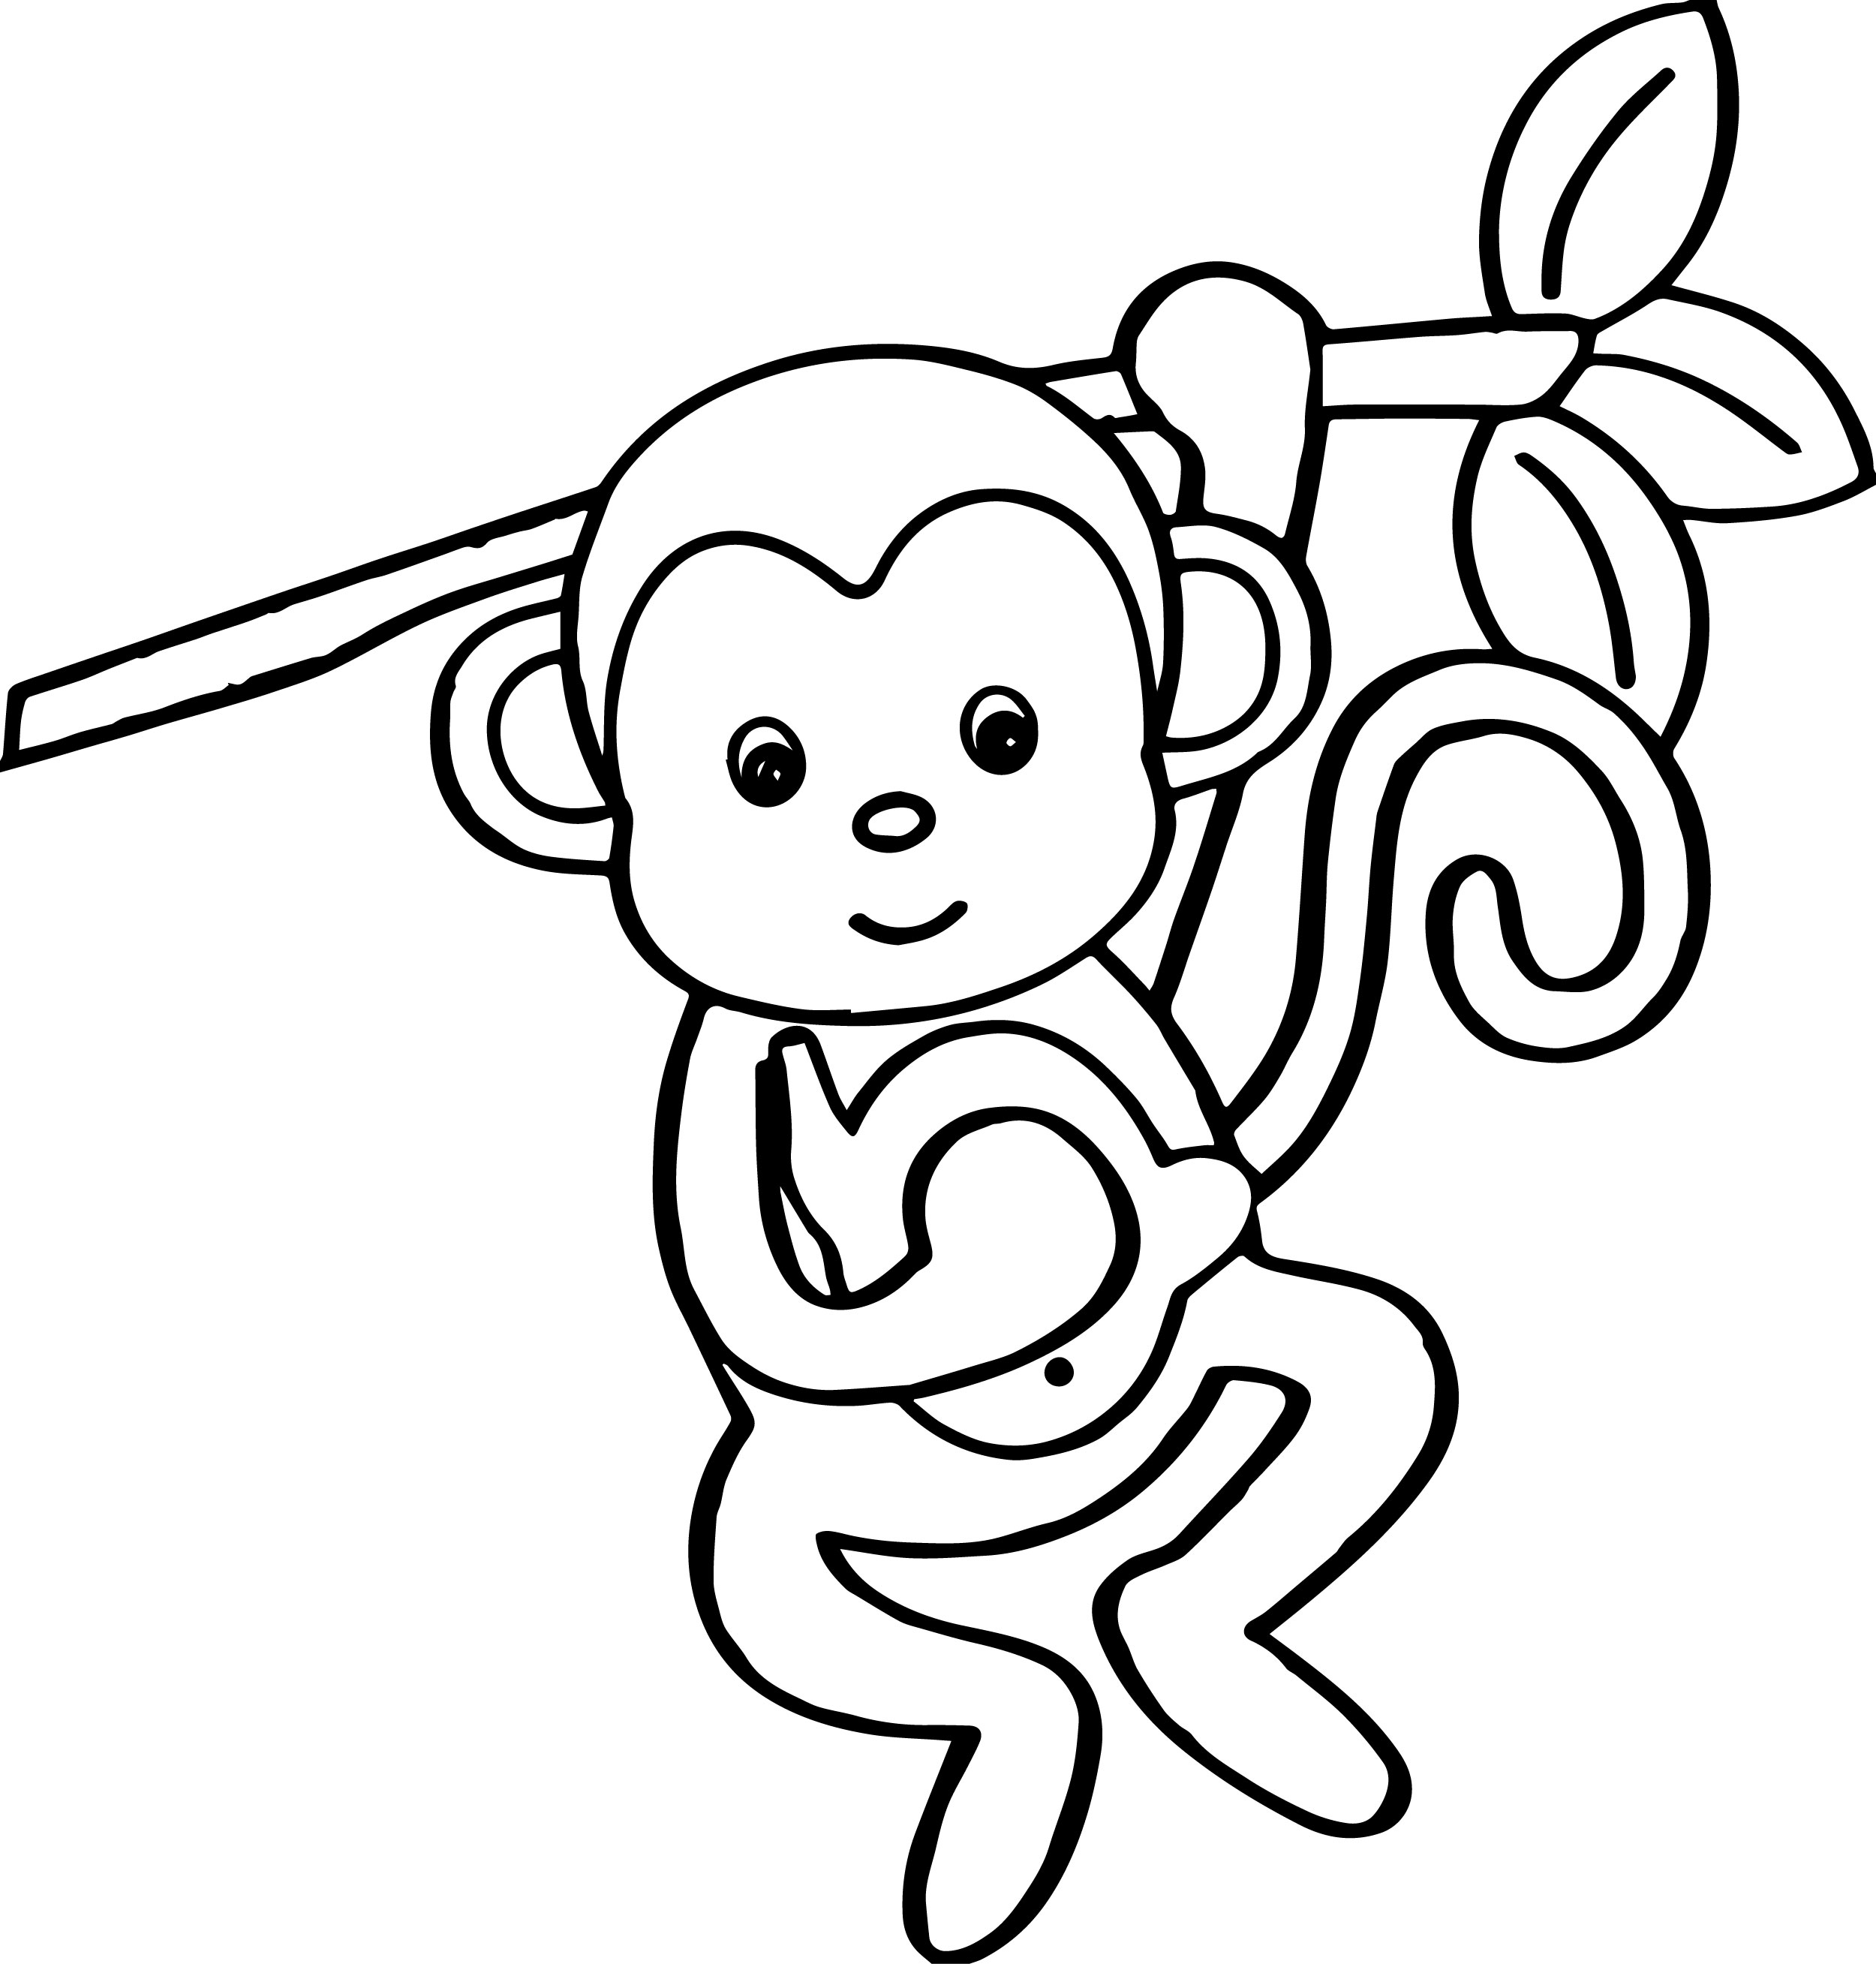 coloring pages of monkeys - cartoon animals kids monkey coloring page